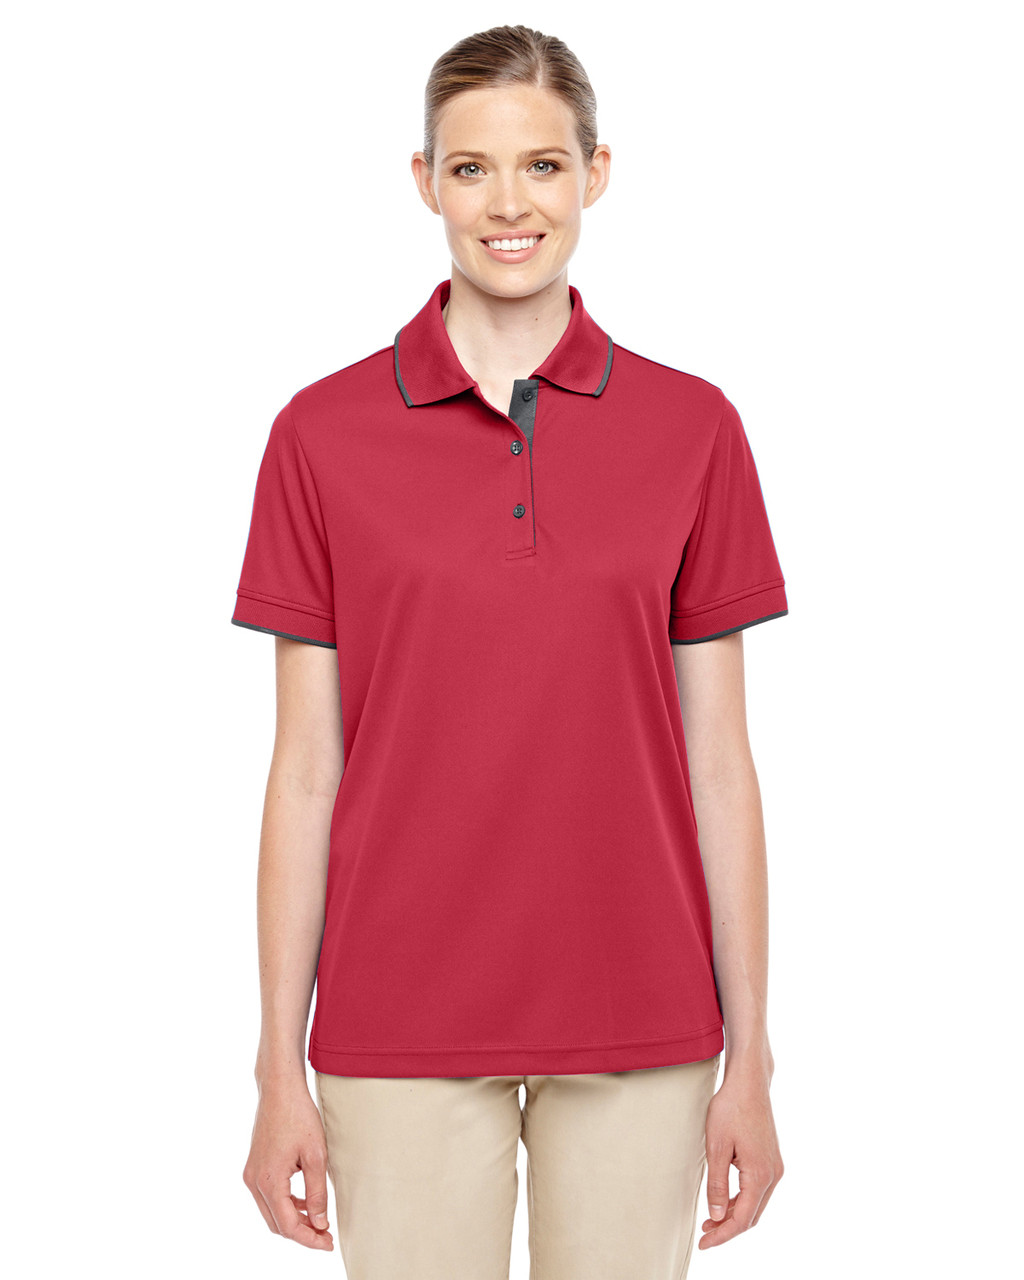 Classic Red/Carbon - 78222 Ash City - Core 365 Ladies' Motive Performance Pique Polo Shirt with Tipped Collar | Blankclothing.ca